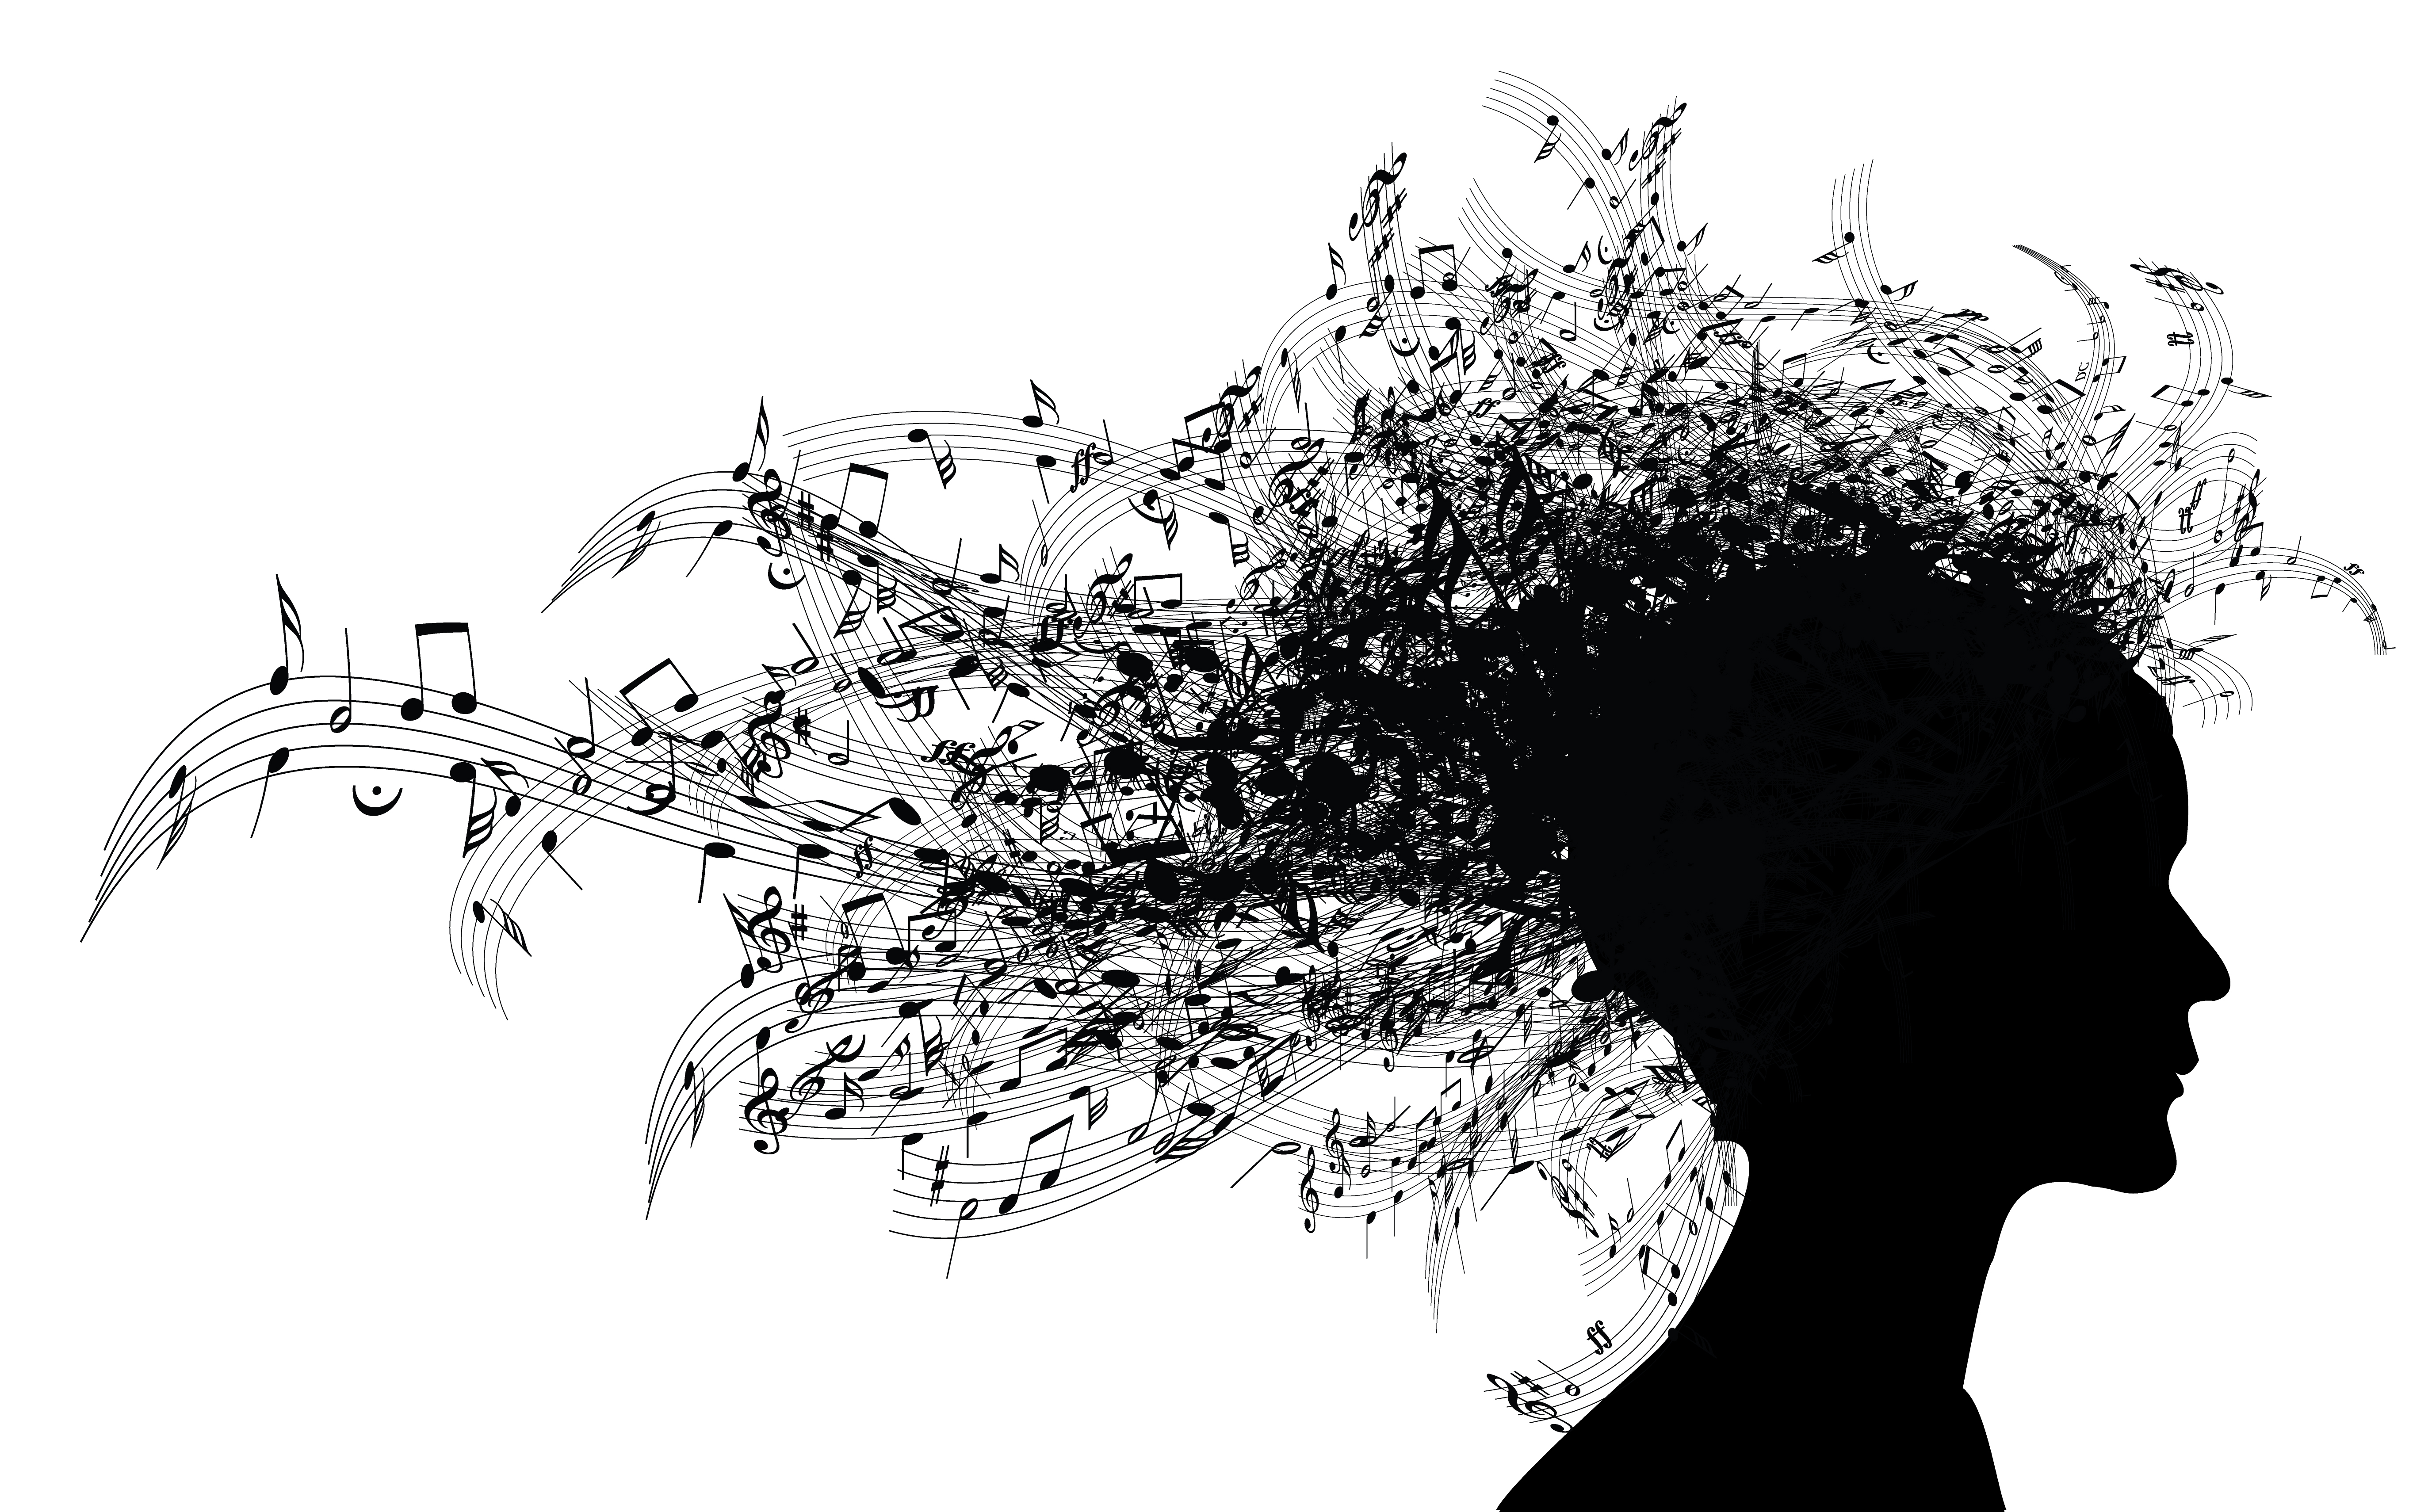 Silhouette image of woman with musical notes streaming from her head like hair.